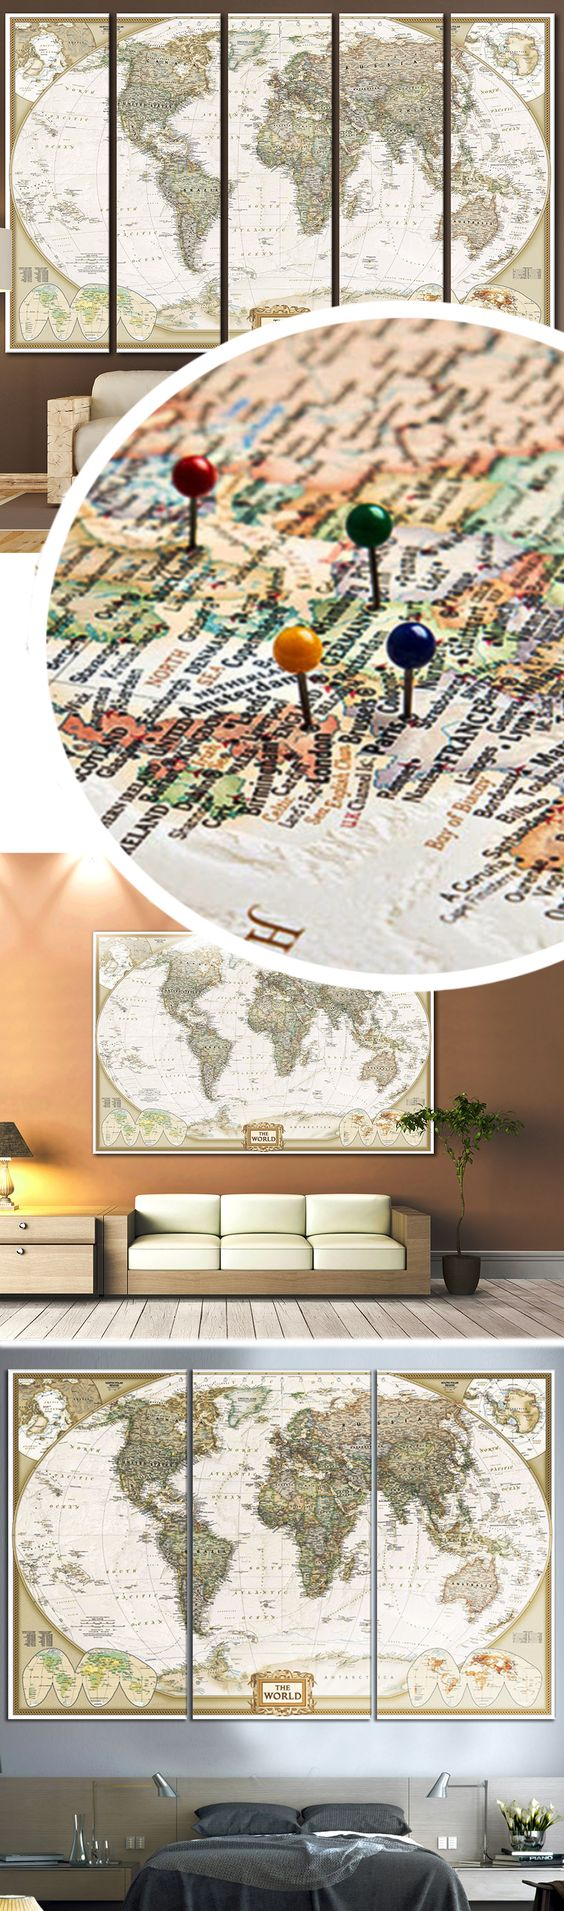 Push pin world map 866 canvas print zellart canvas arts map creative world map canvas prints wall art for large home or office wall decoration sale gumiabroncs Gallery